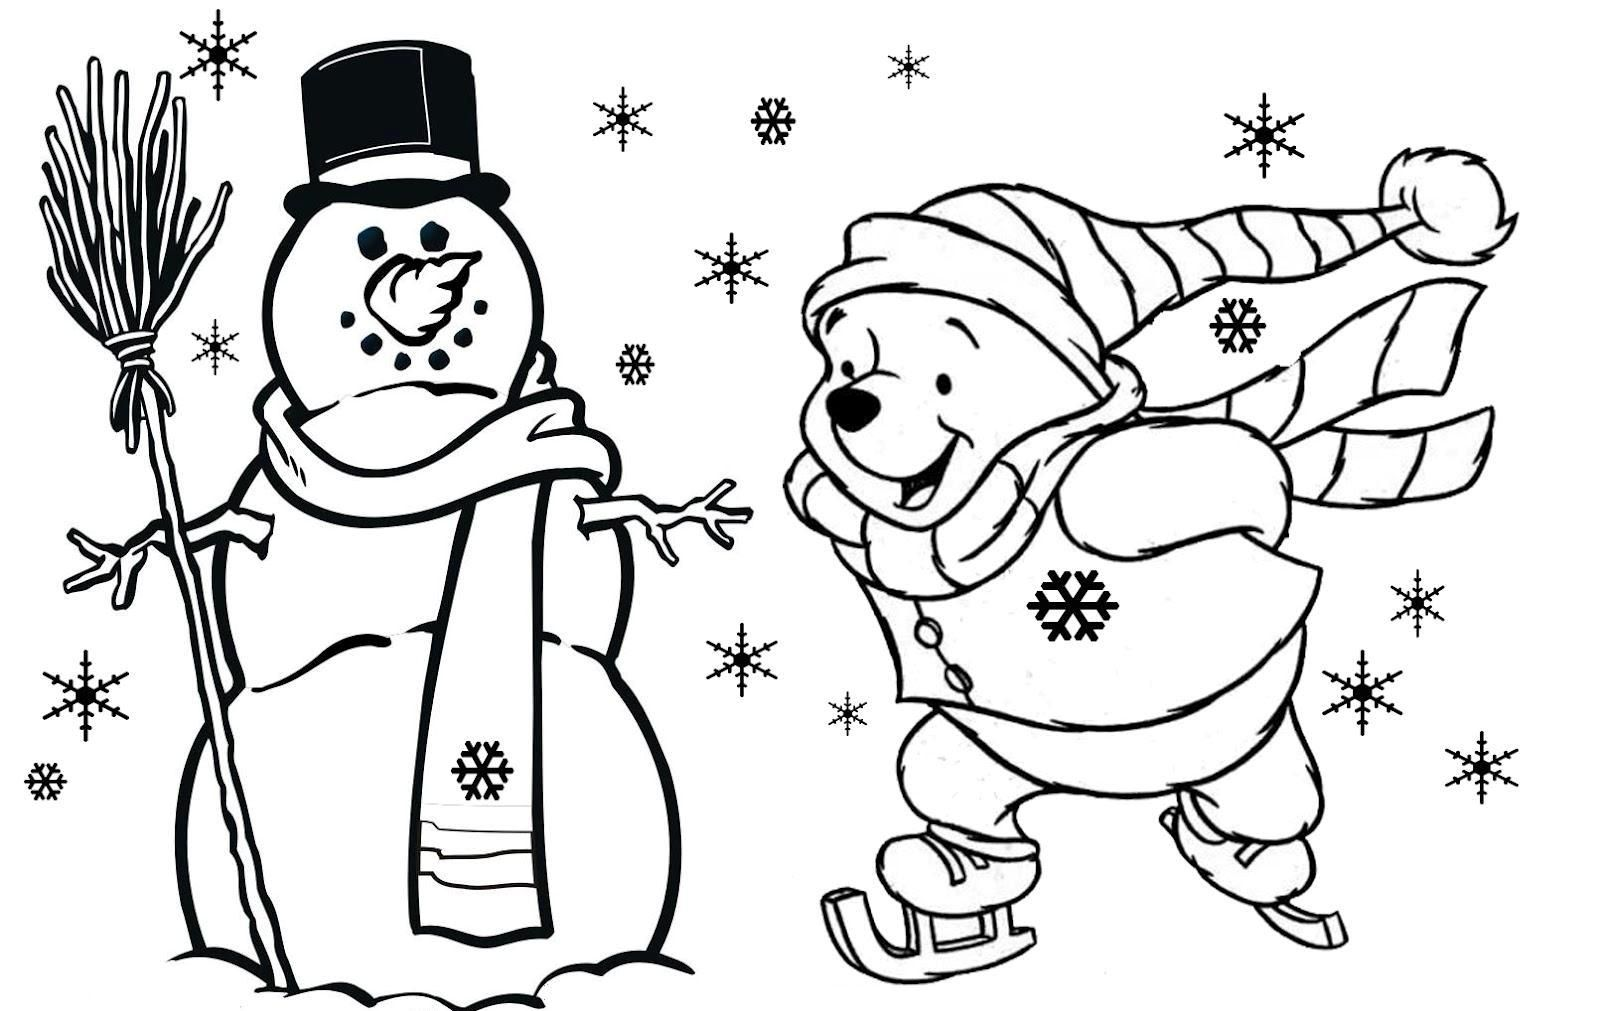 Disney Christmas Coloring Pages For Kids Printable